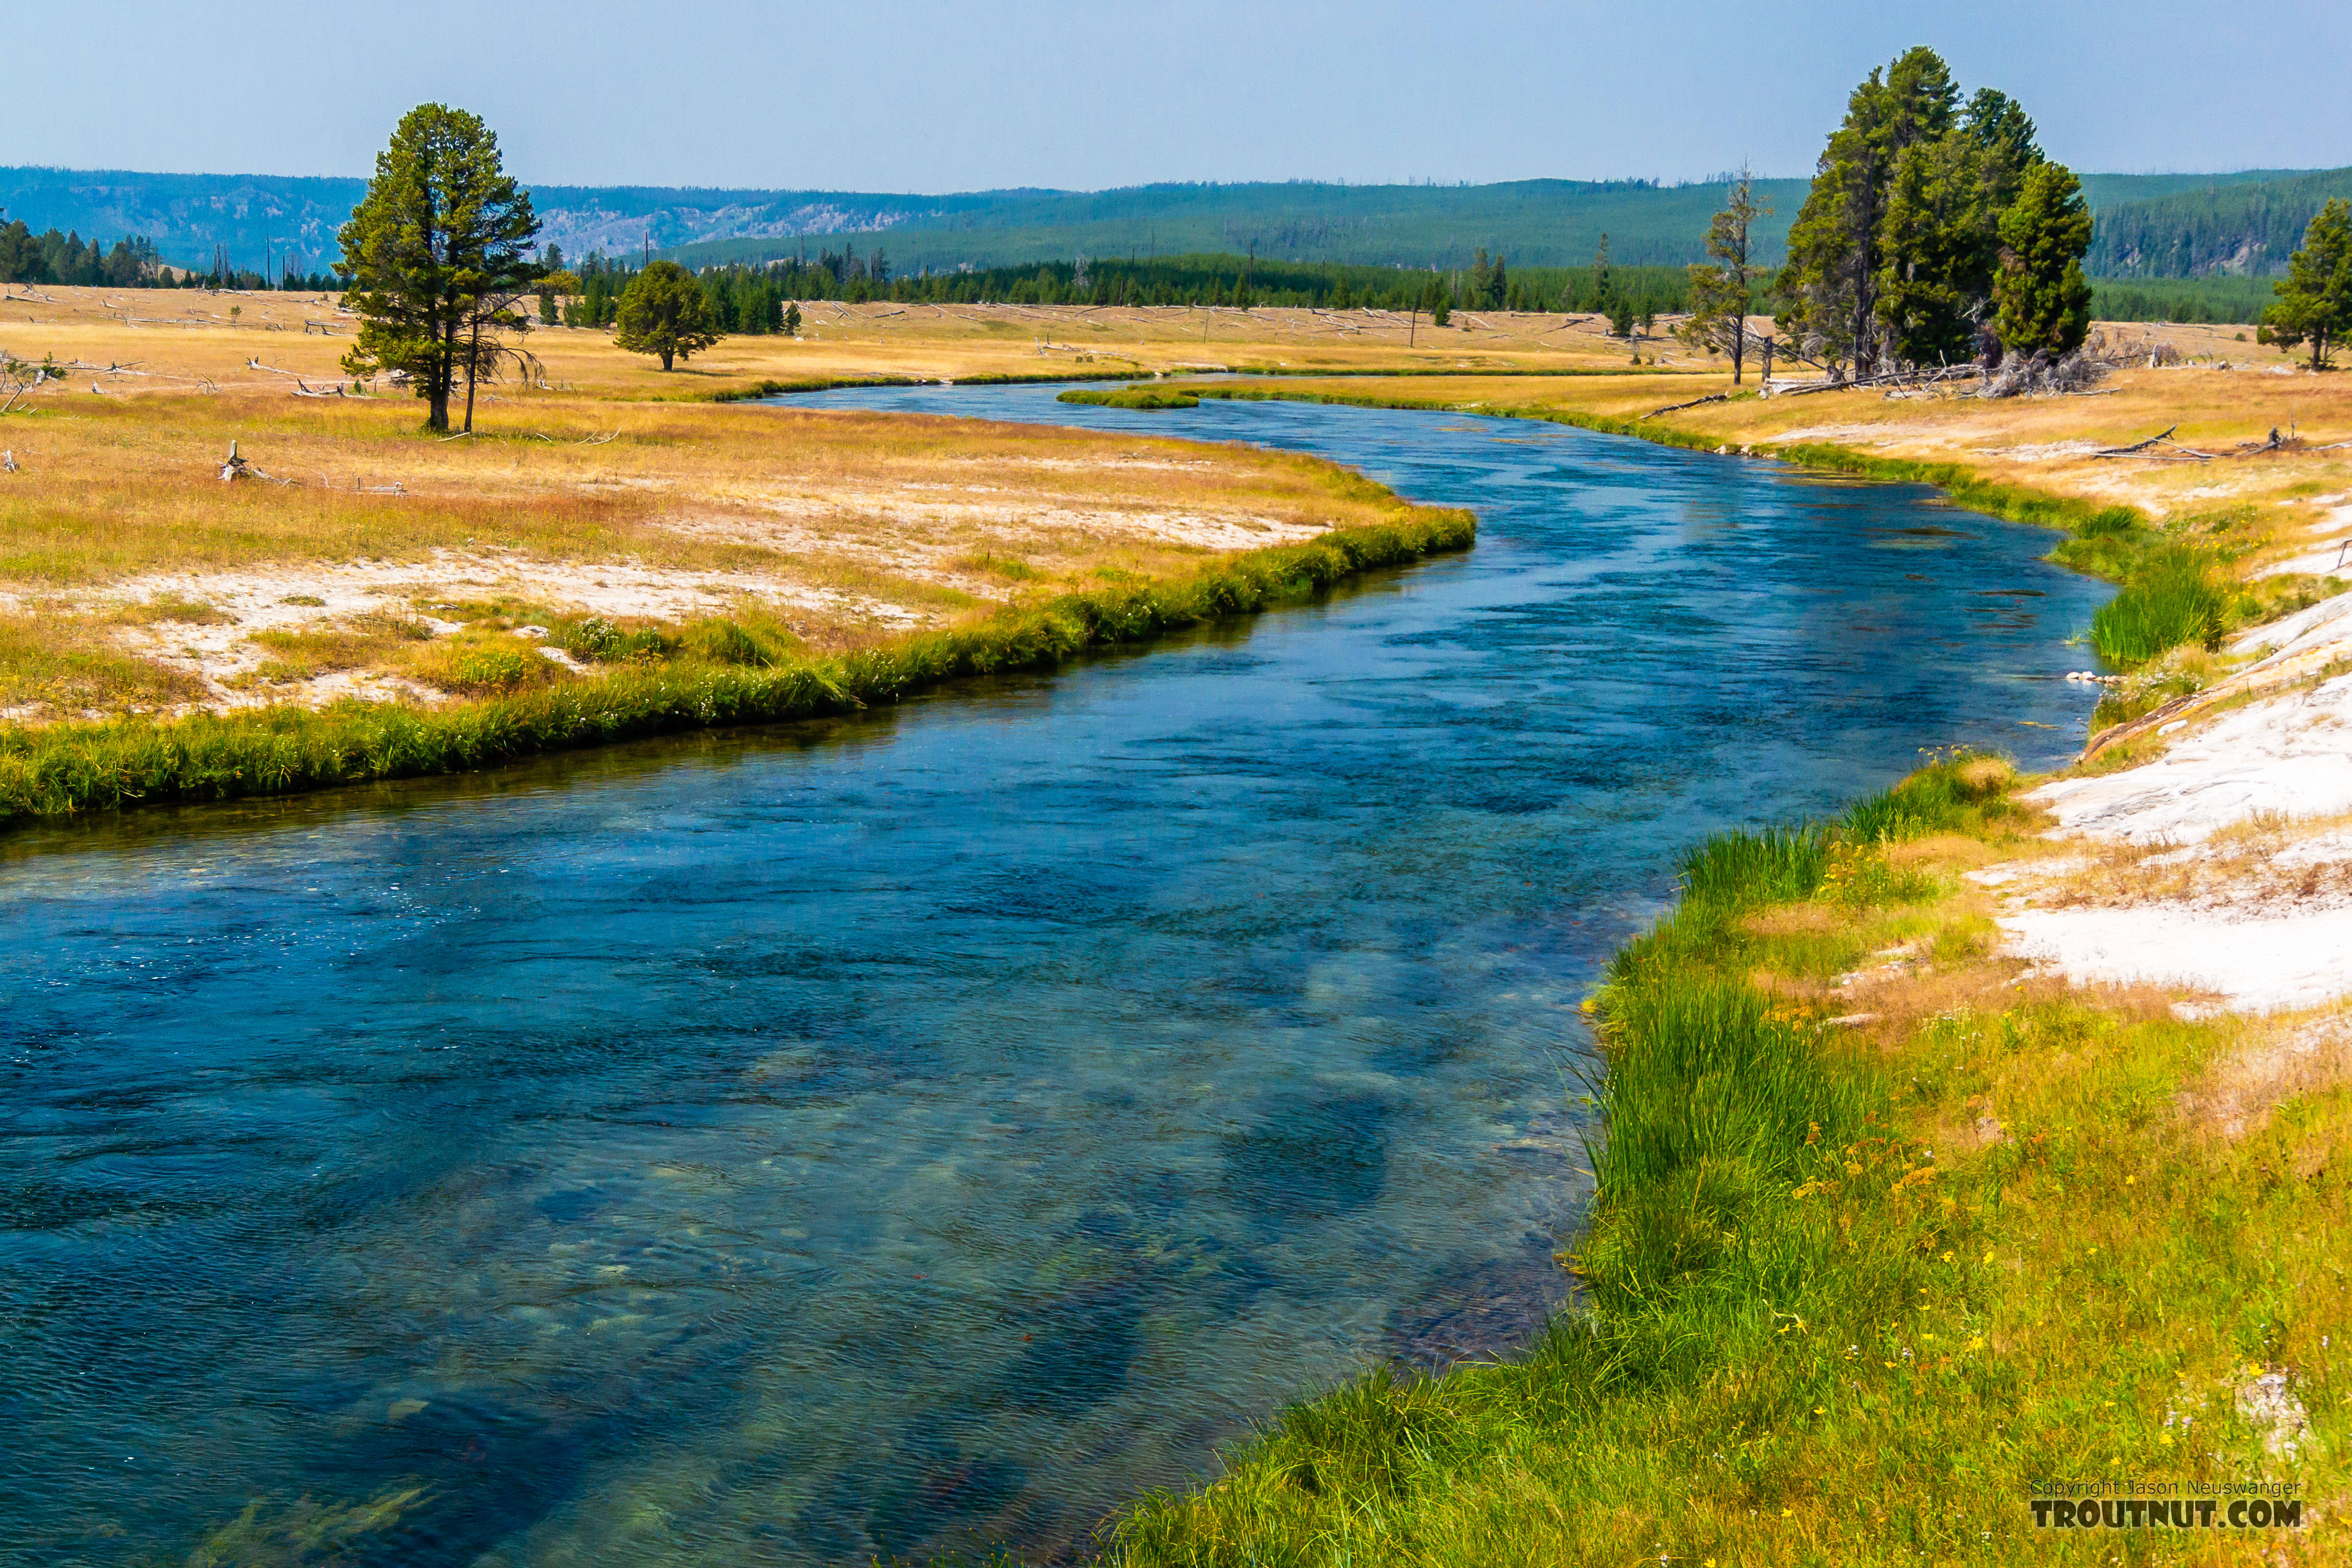 """The """"Fountain Flats"""" stretch of the Firehole was fishable in the morning after an uncharacteristically cold August night. From the Firehole River in Wyoming."""